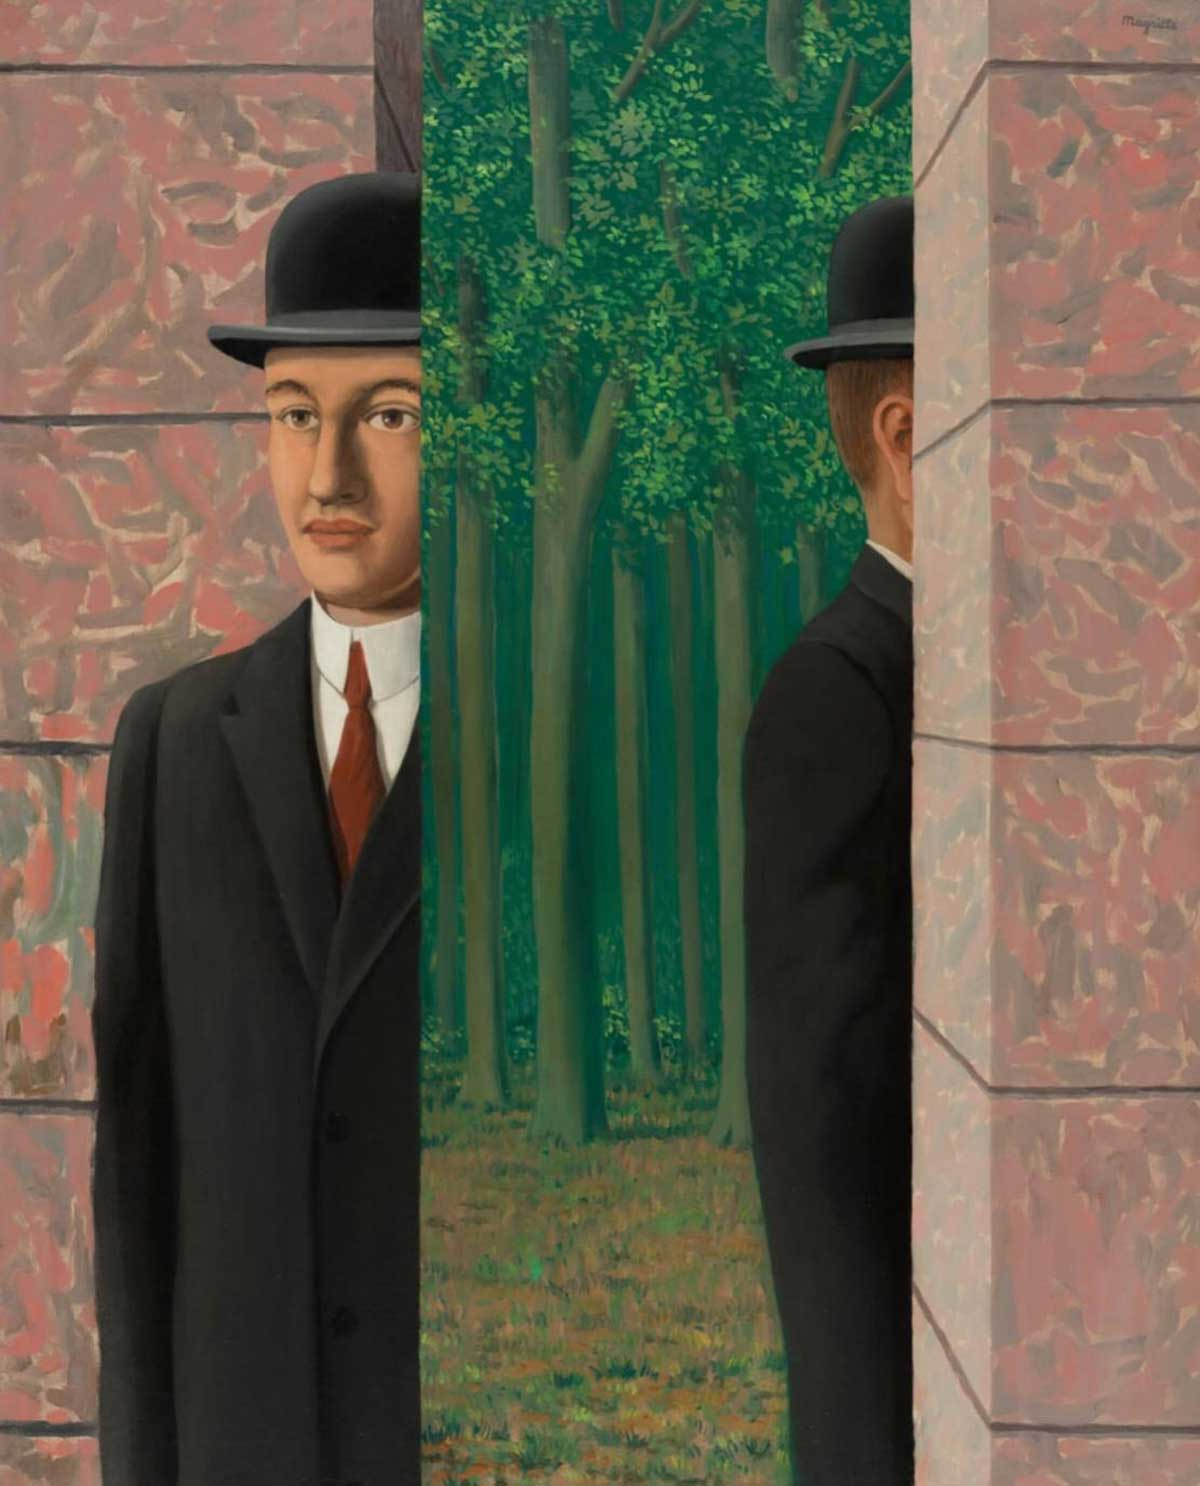 https://www.artsandcollections.com/wp-content/uploads/2018/11/magritte-masterpiece.jpg